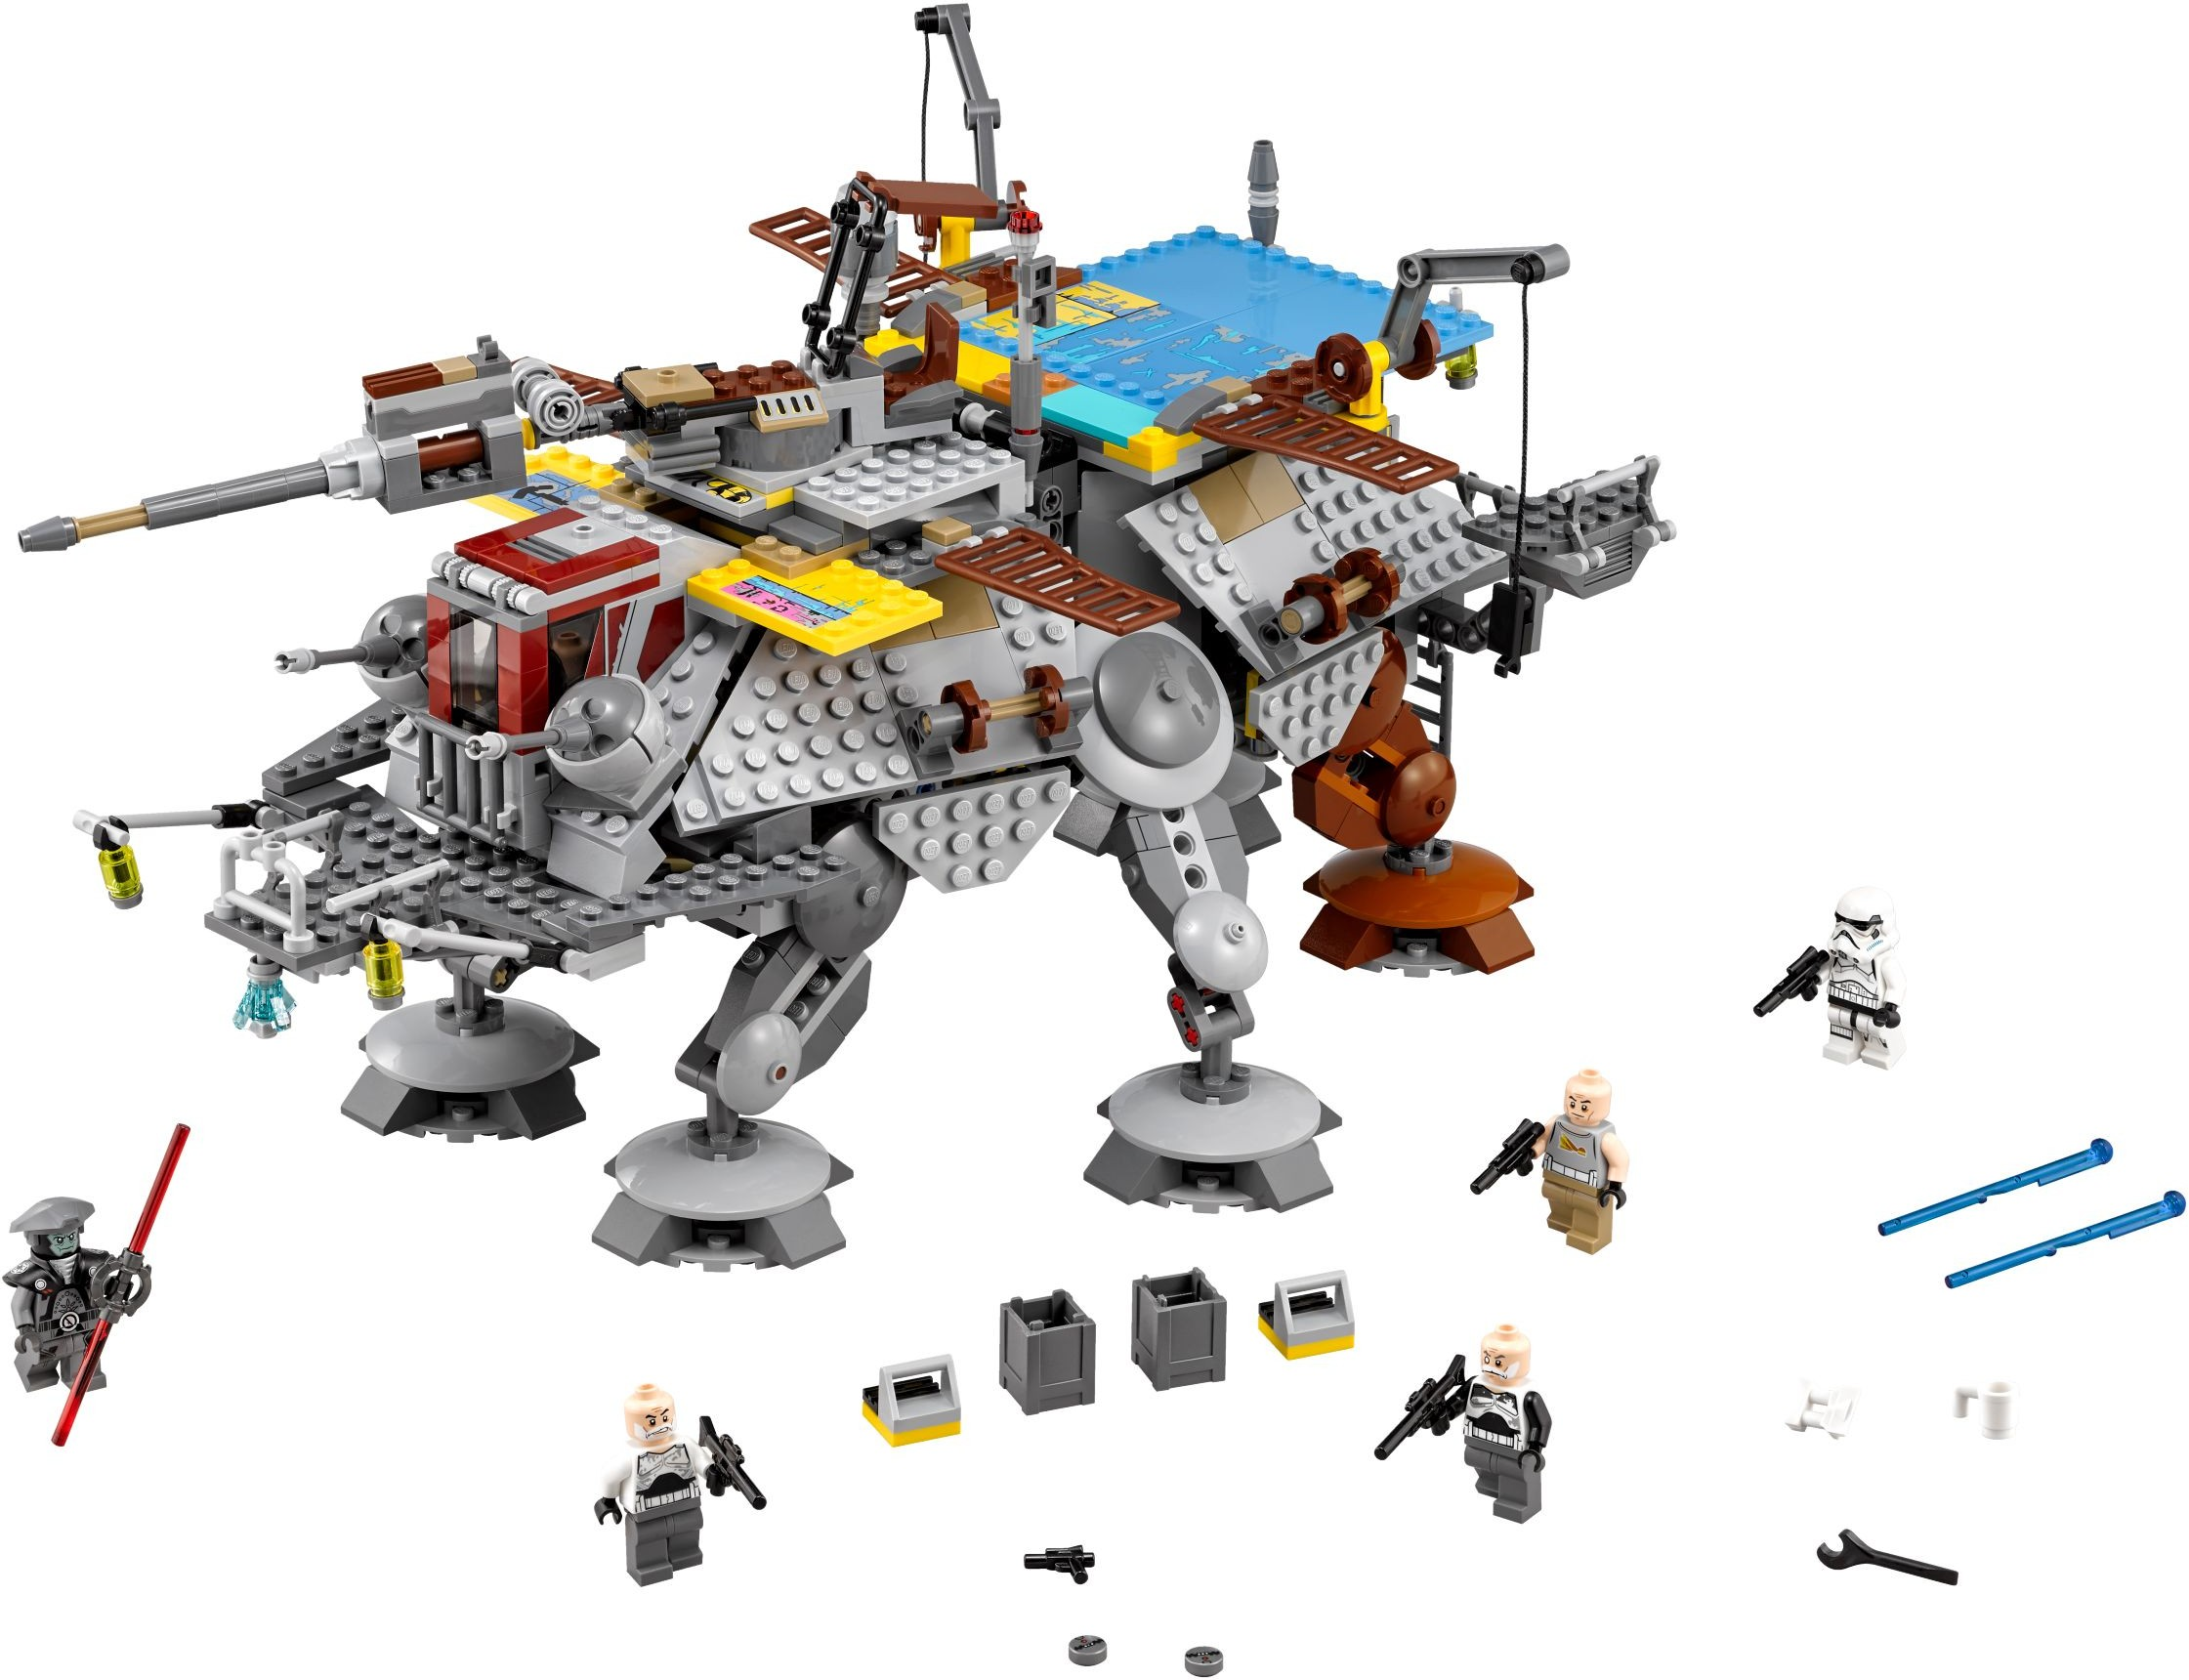 http://images.brickset.com/sets/large/75157-1.jpg?201604191059